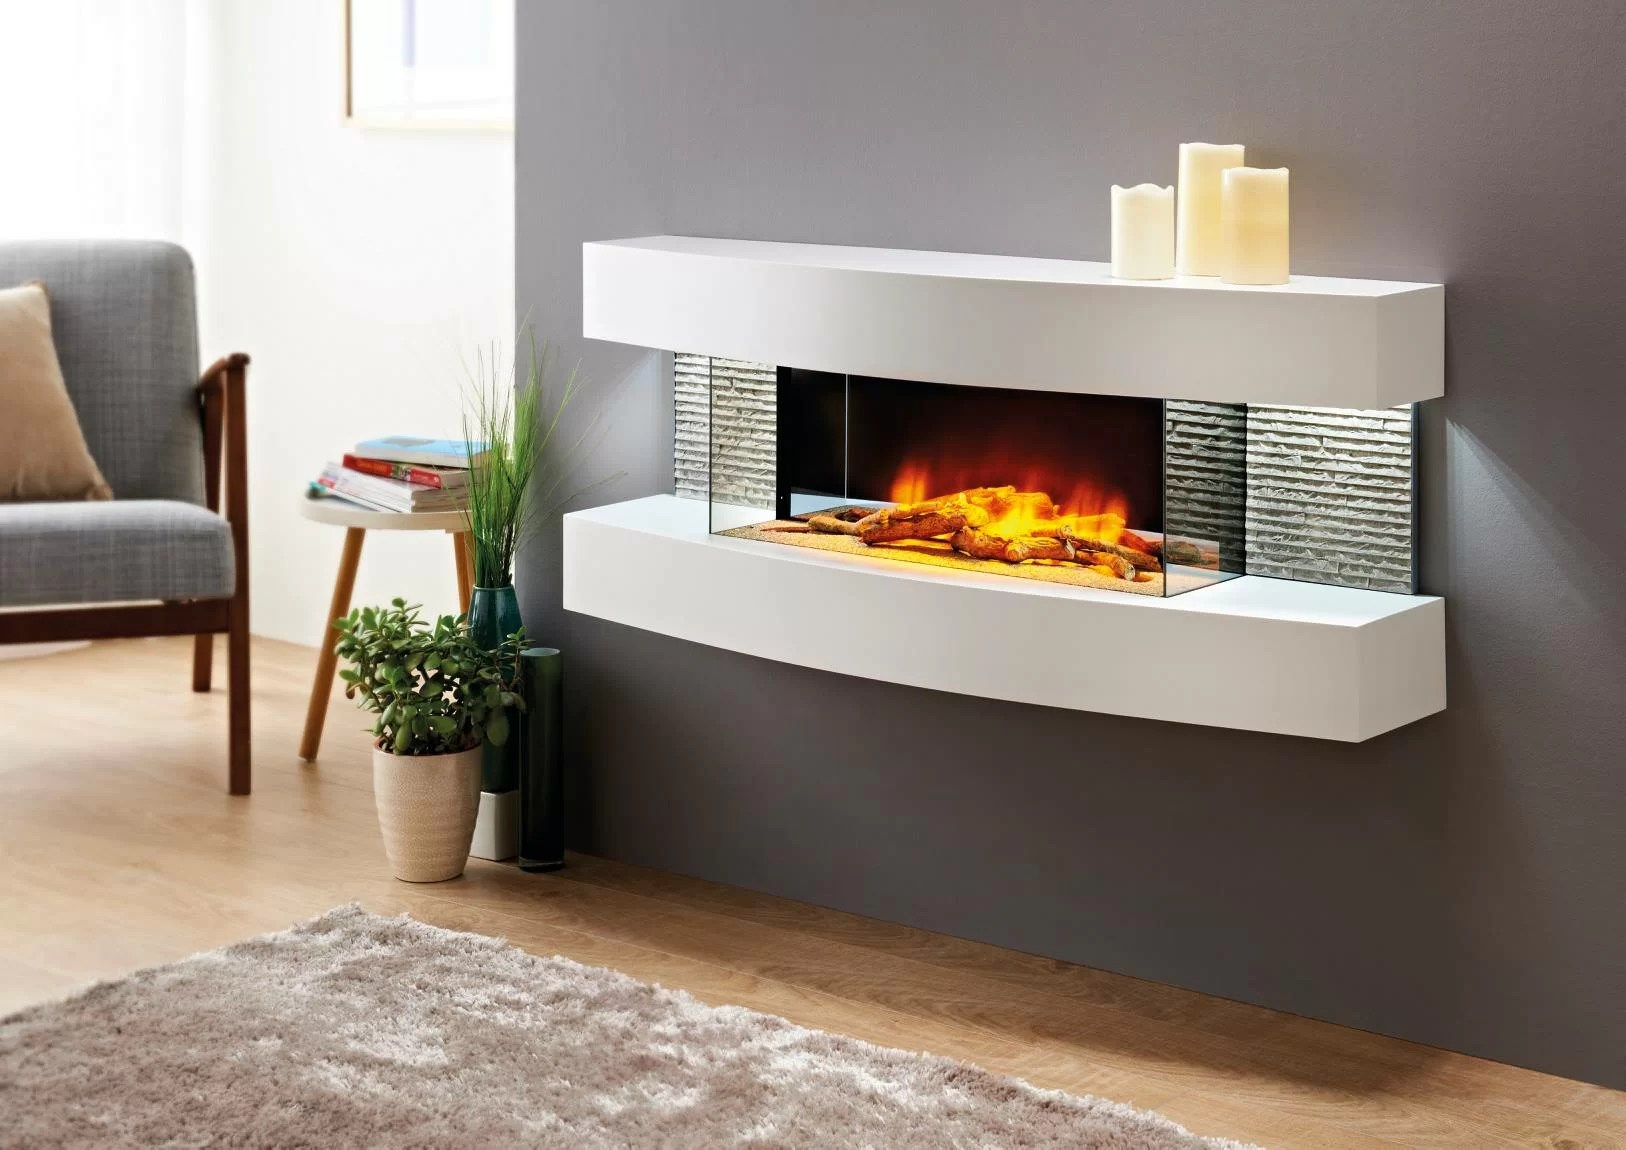 Artificial Fireplaces Fraenzel Curve Wall Mounted Electric Fireplace